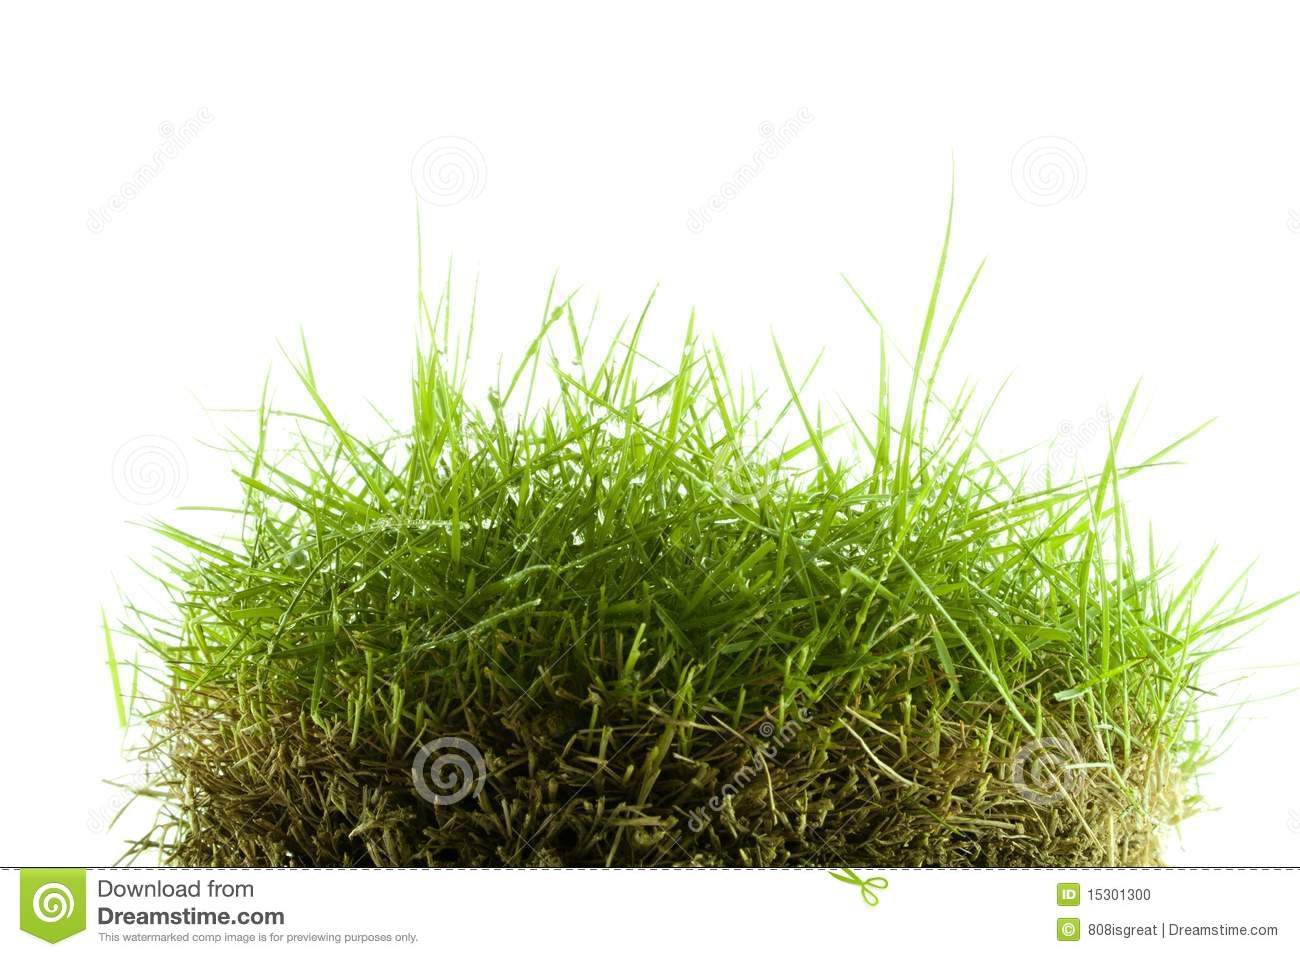 Mound of zoysia wet grass stock photo image 15301300 for Mounding grass